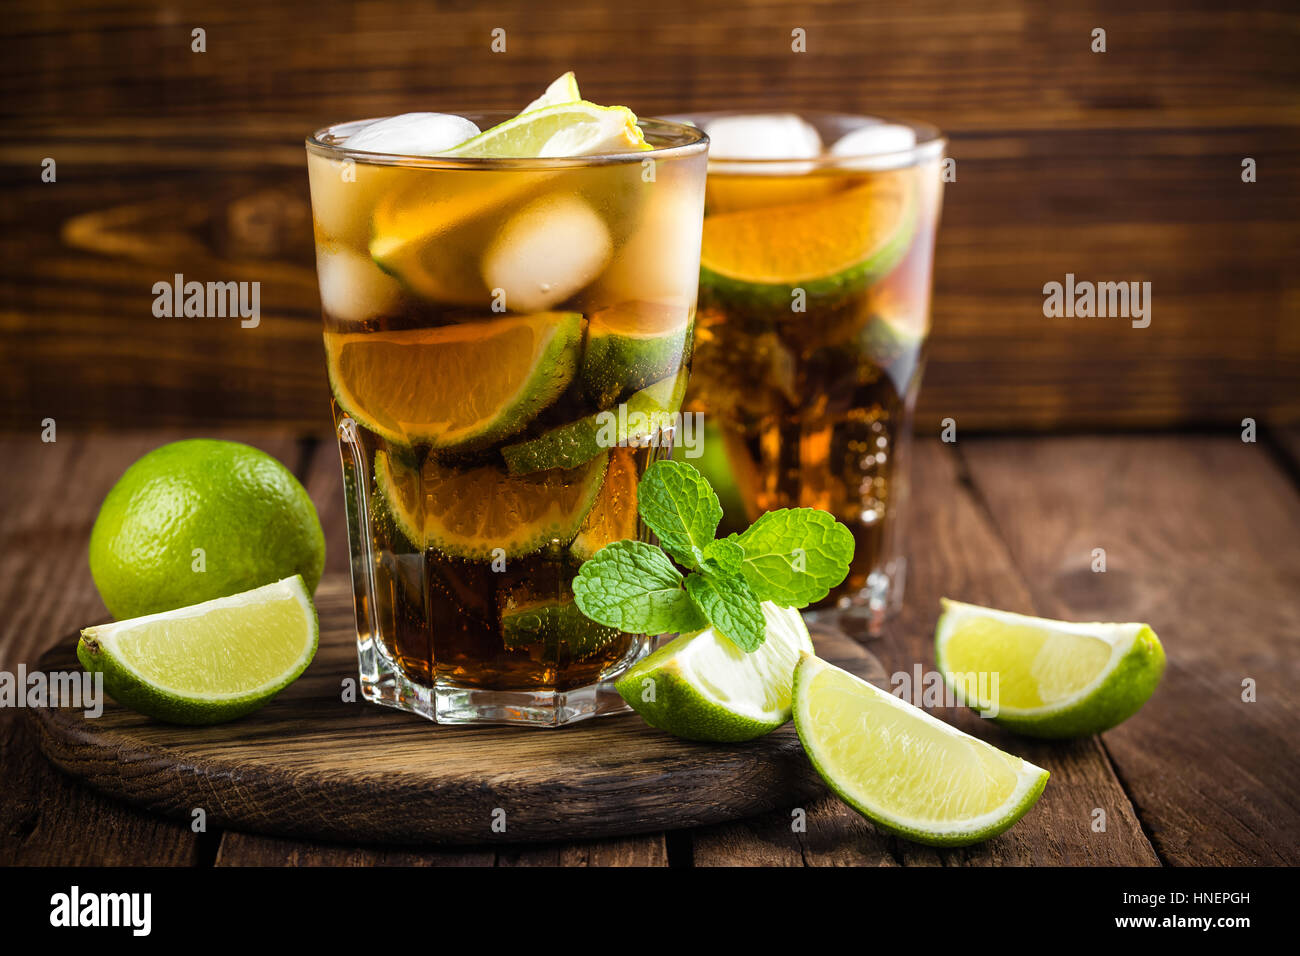 Cuba Libre cocktail with cola, lime and ice in glass, cold longdrink - Stock Image